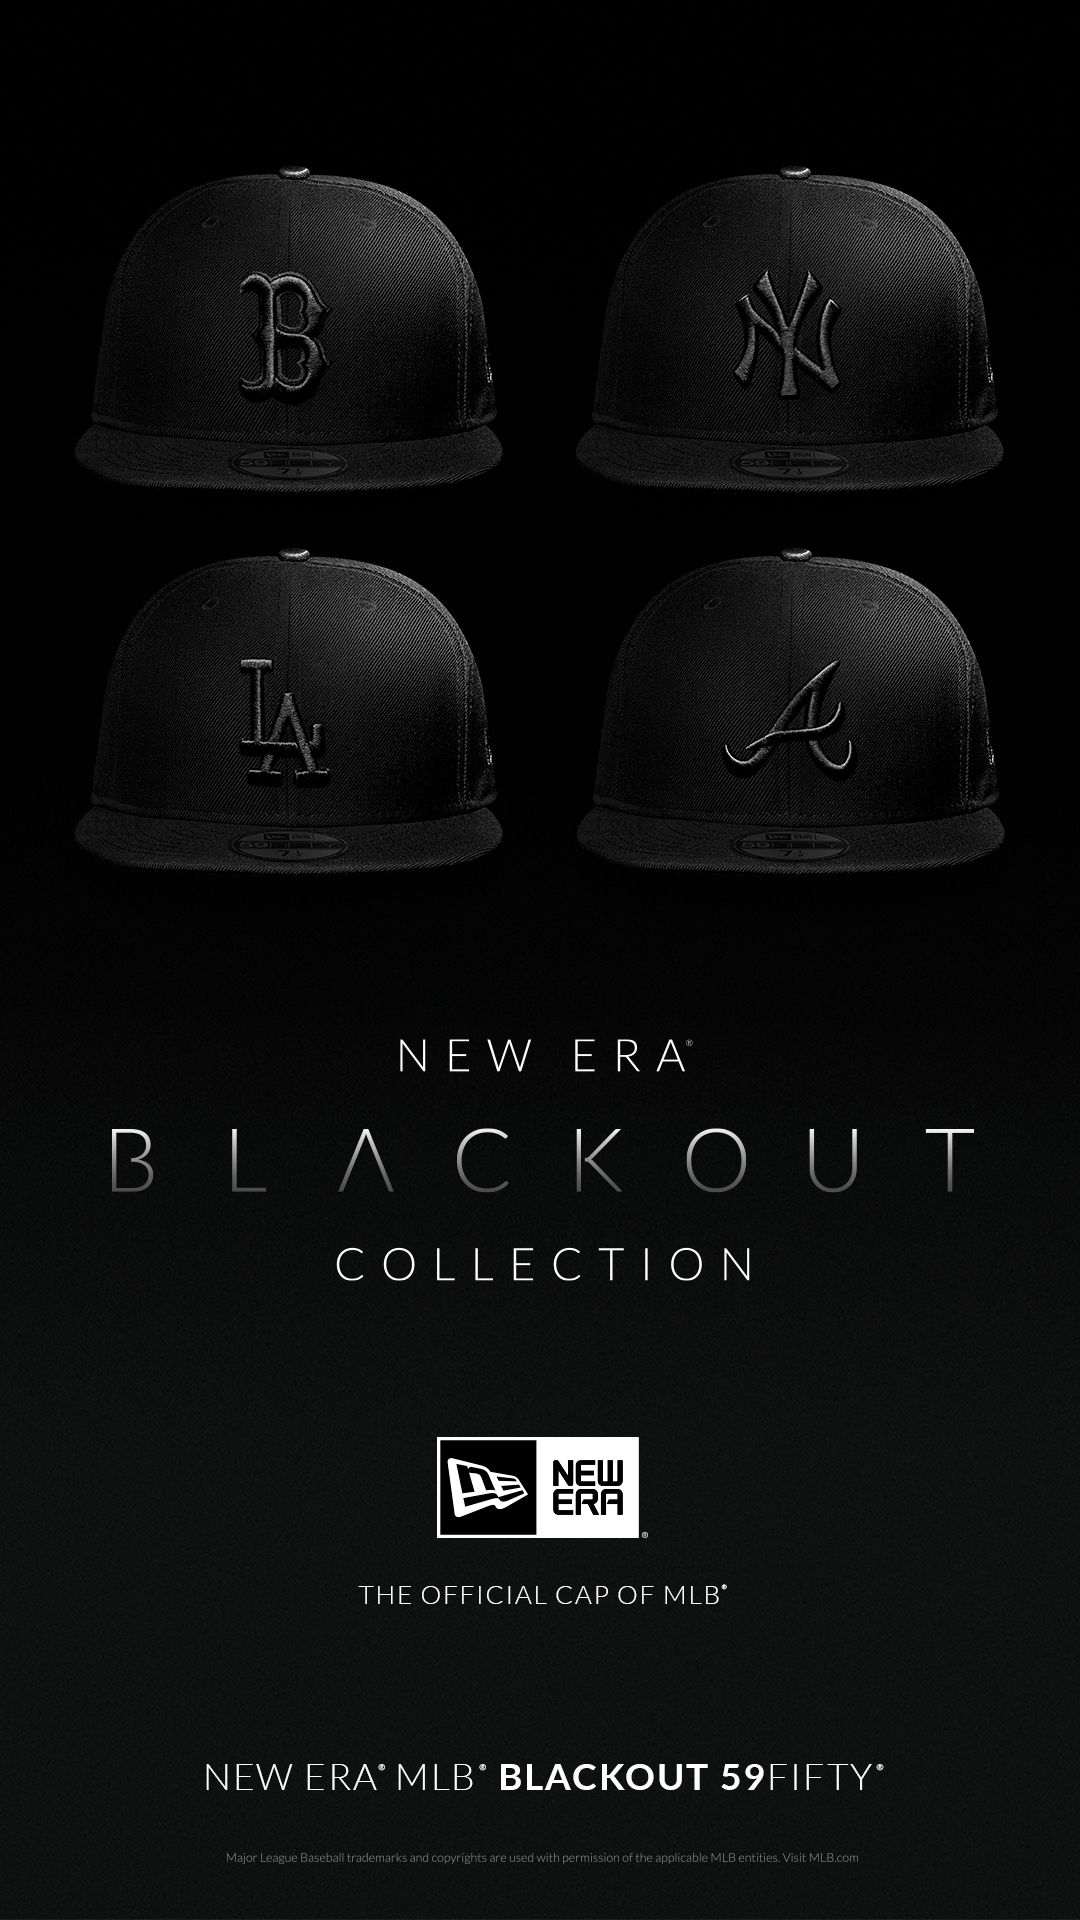 separation shoes 9e4de 3cfeb Baseball Hat · BLACKOUT IS HERE. Check out this Lids Exclusive collection  where everything is blacked out for